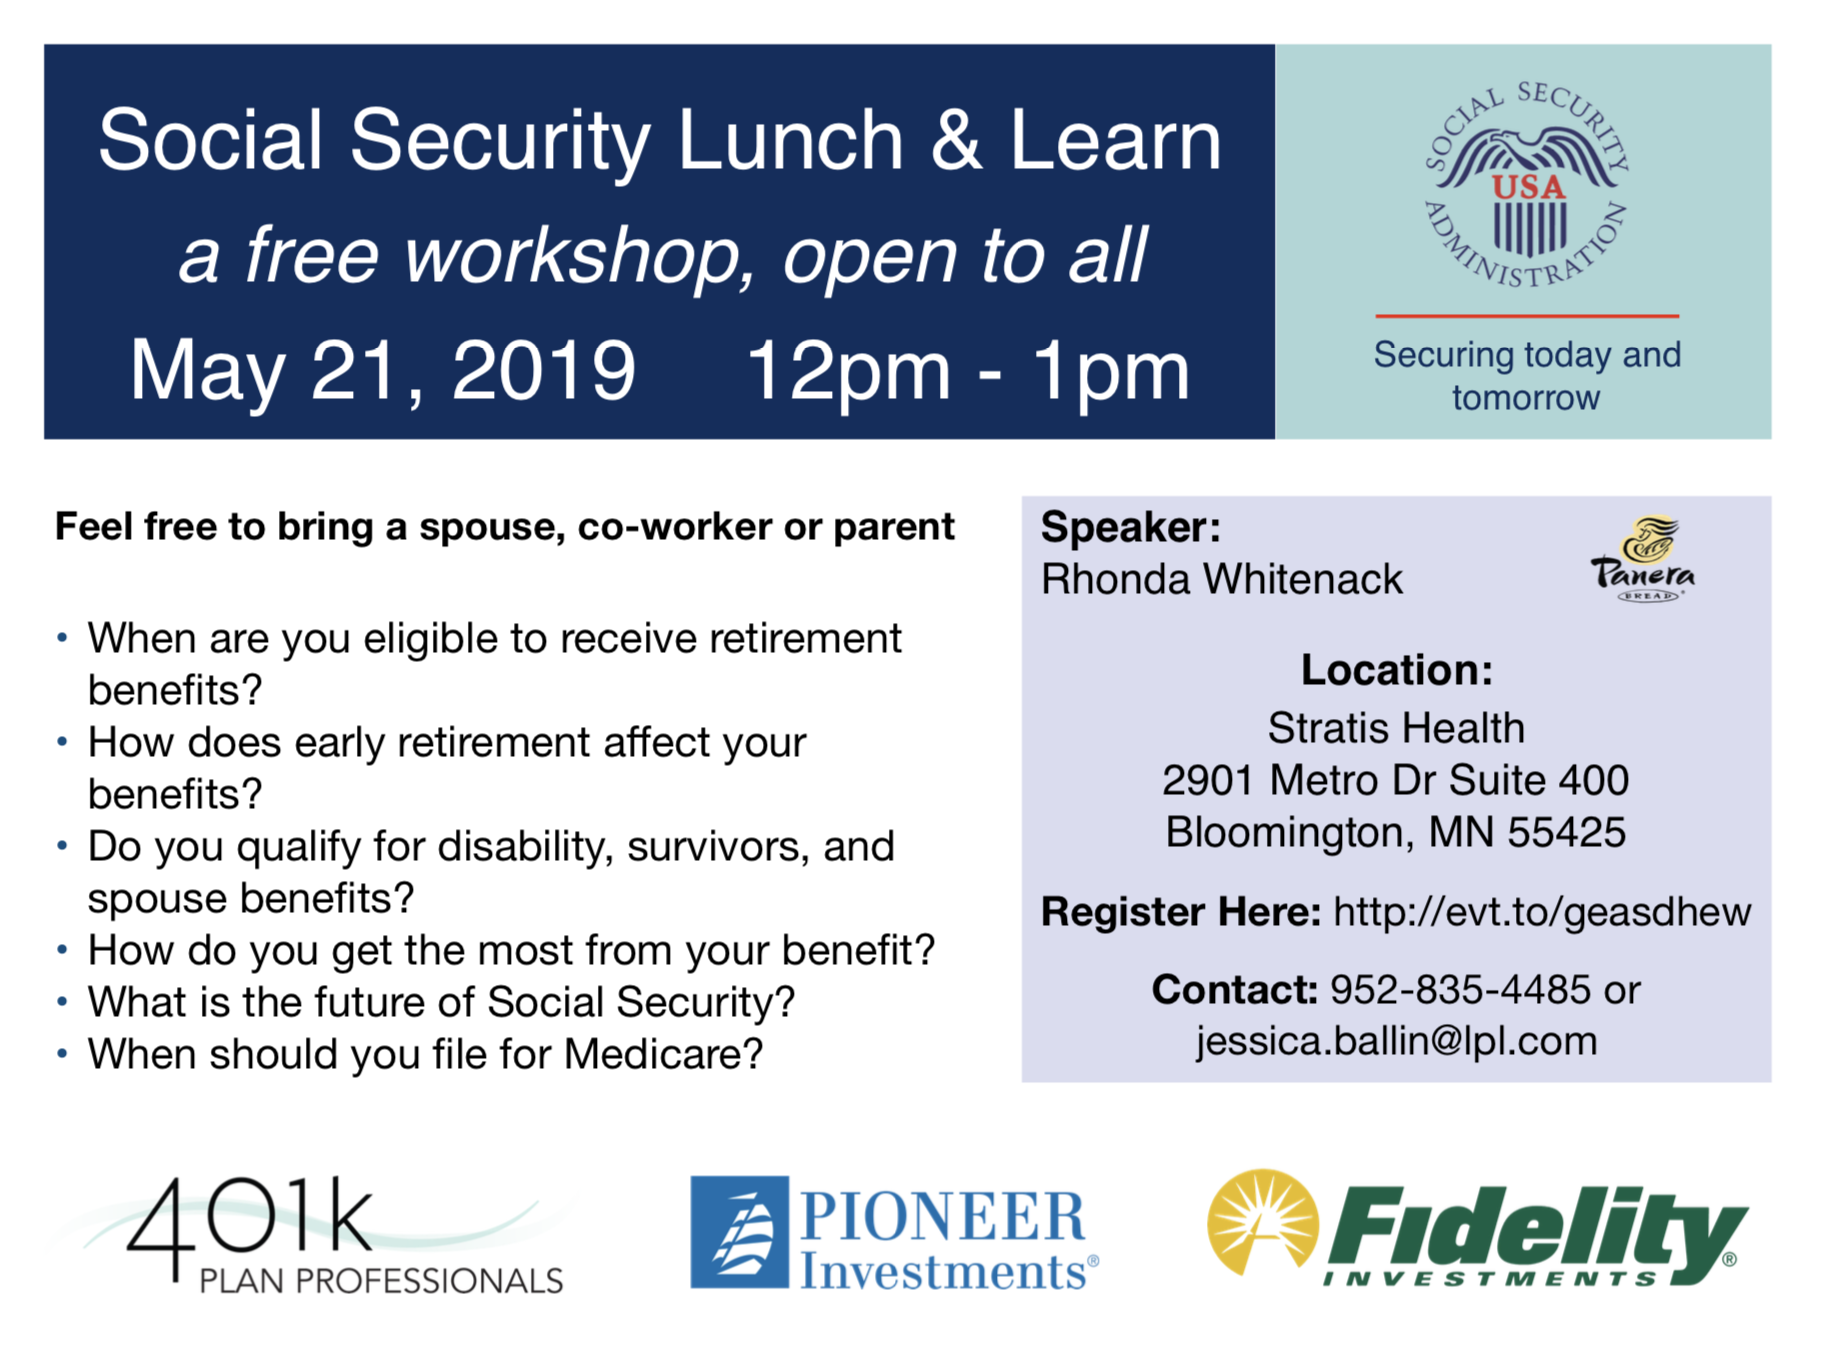 401k Plan Professionals Social Security Administration Event 2019 Client Education.png